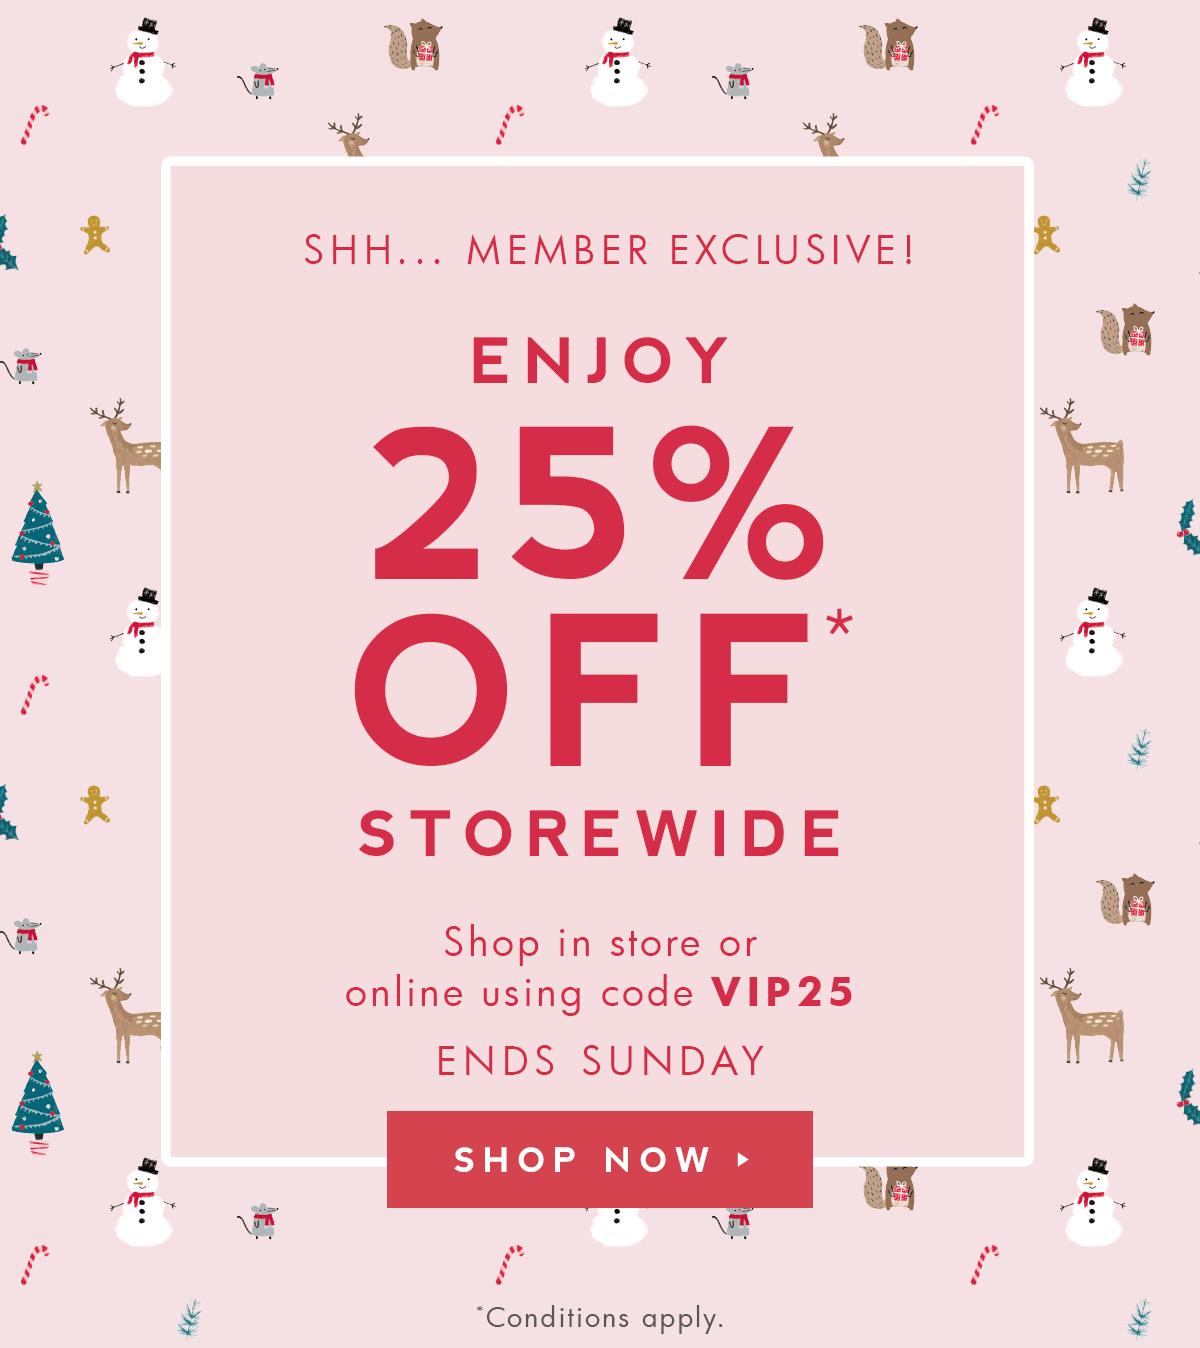 SHH... MEMBER EXCLUSIVE: ENJOY 25% OFF STOREWIDE - ENDS SUNDAY.